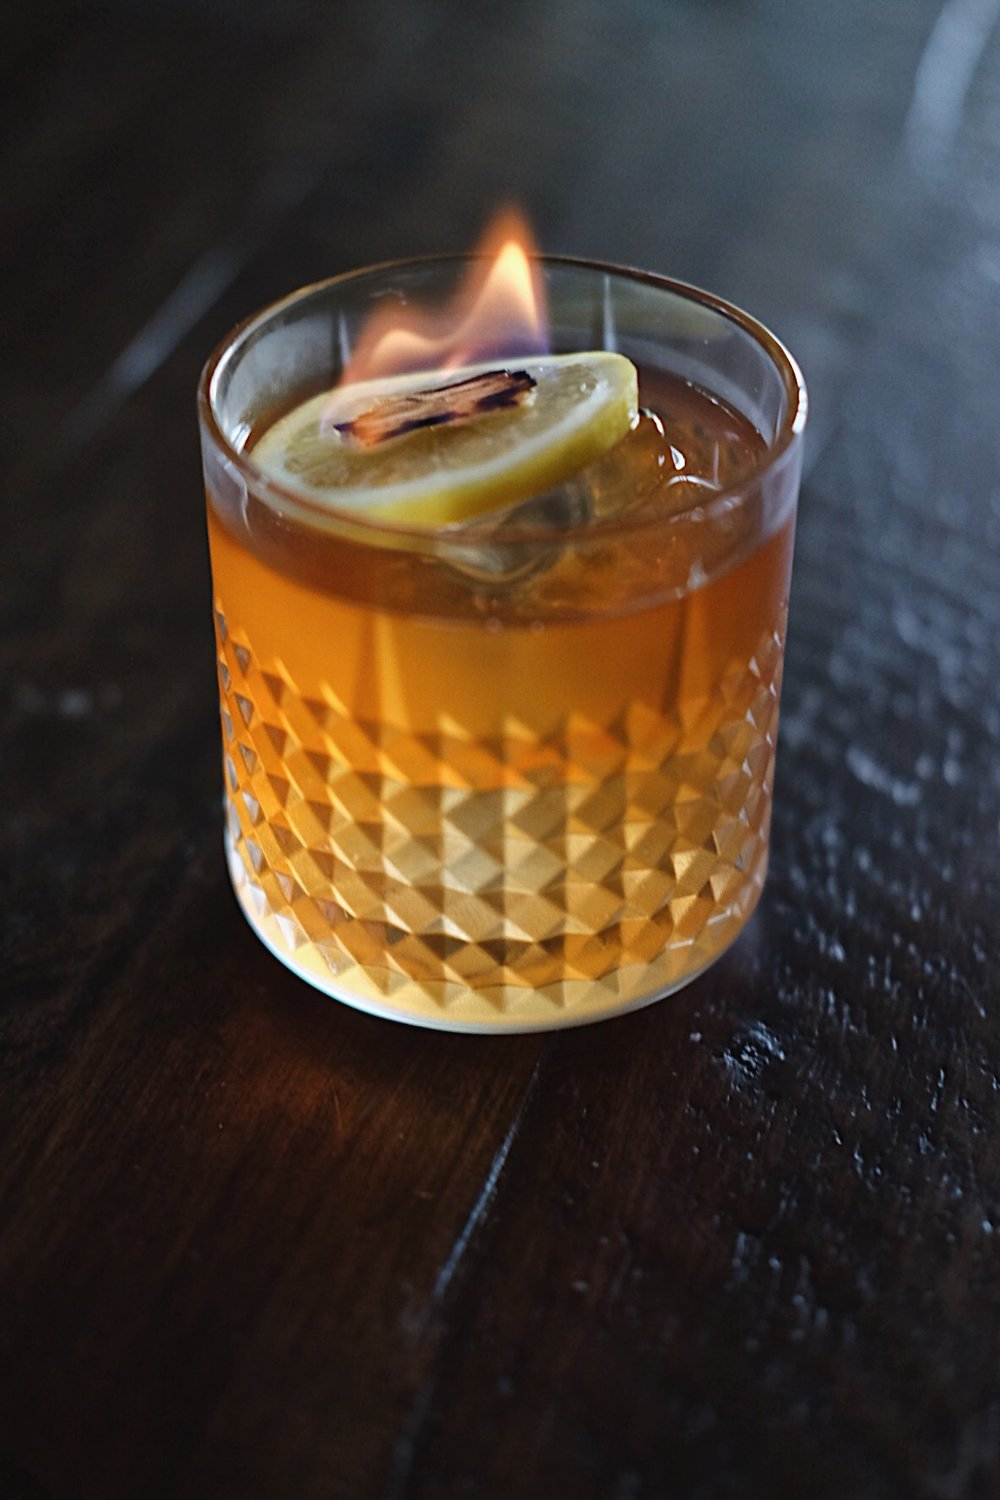 ingredients: - 2 oz blended scotch1/2 oz smoke tea liqueur1/2 oz yellow chartreuse3 dashes Peychaud's bitters2 dashes barrel-aged aromatic bitters1/2 tsp honey syrupGarnish: Lemon wheel & flamed cedar chip